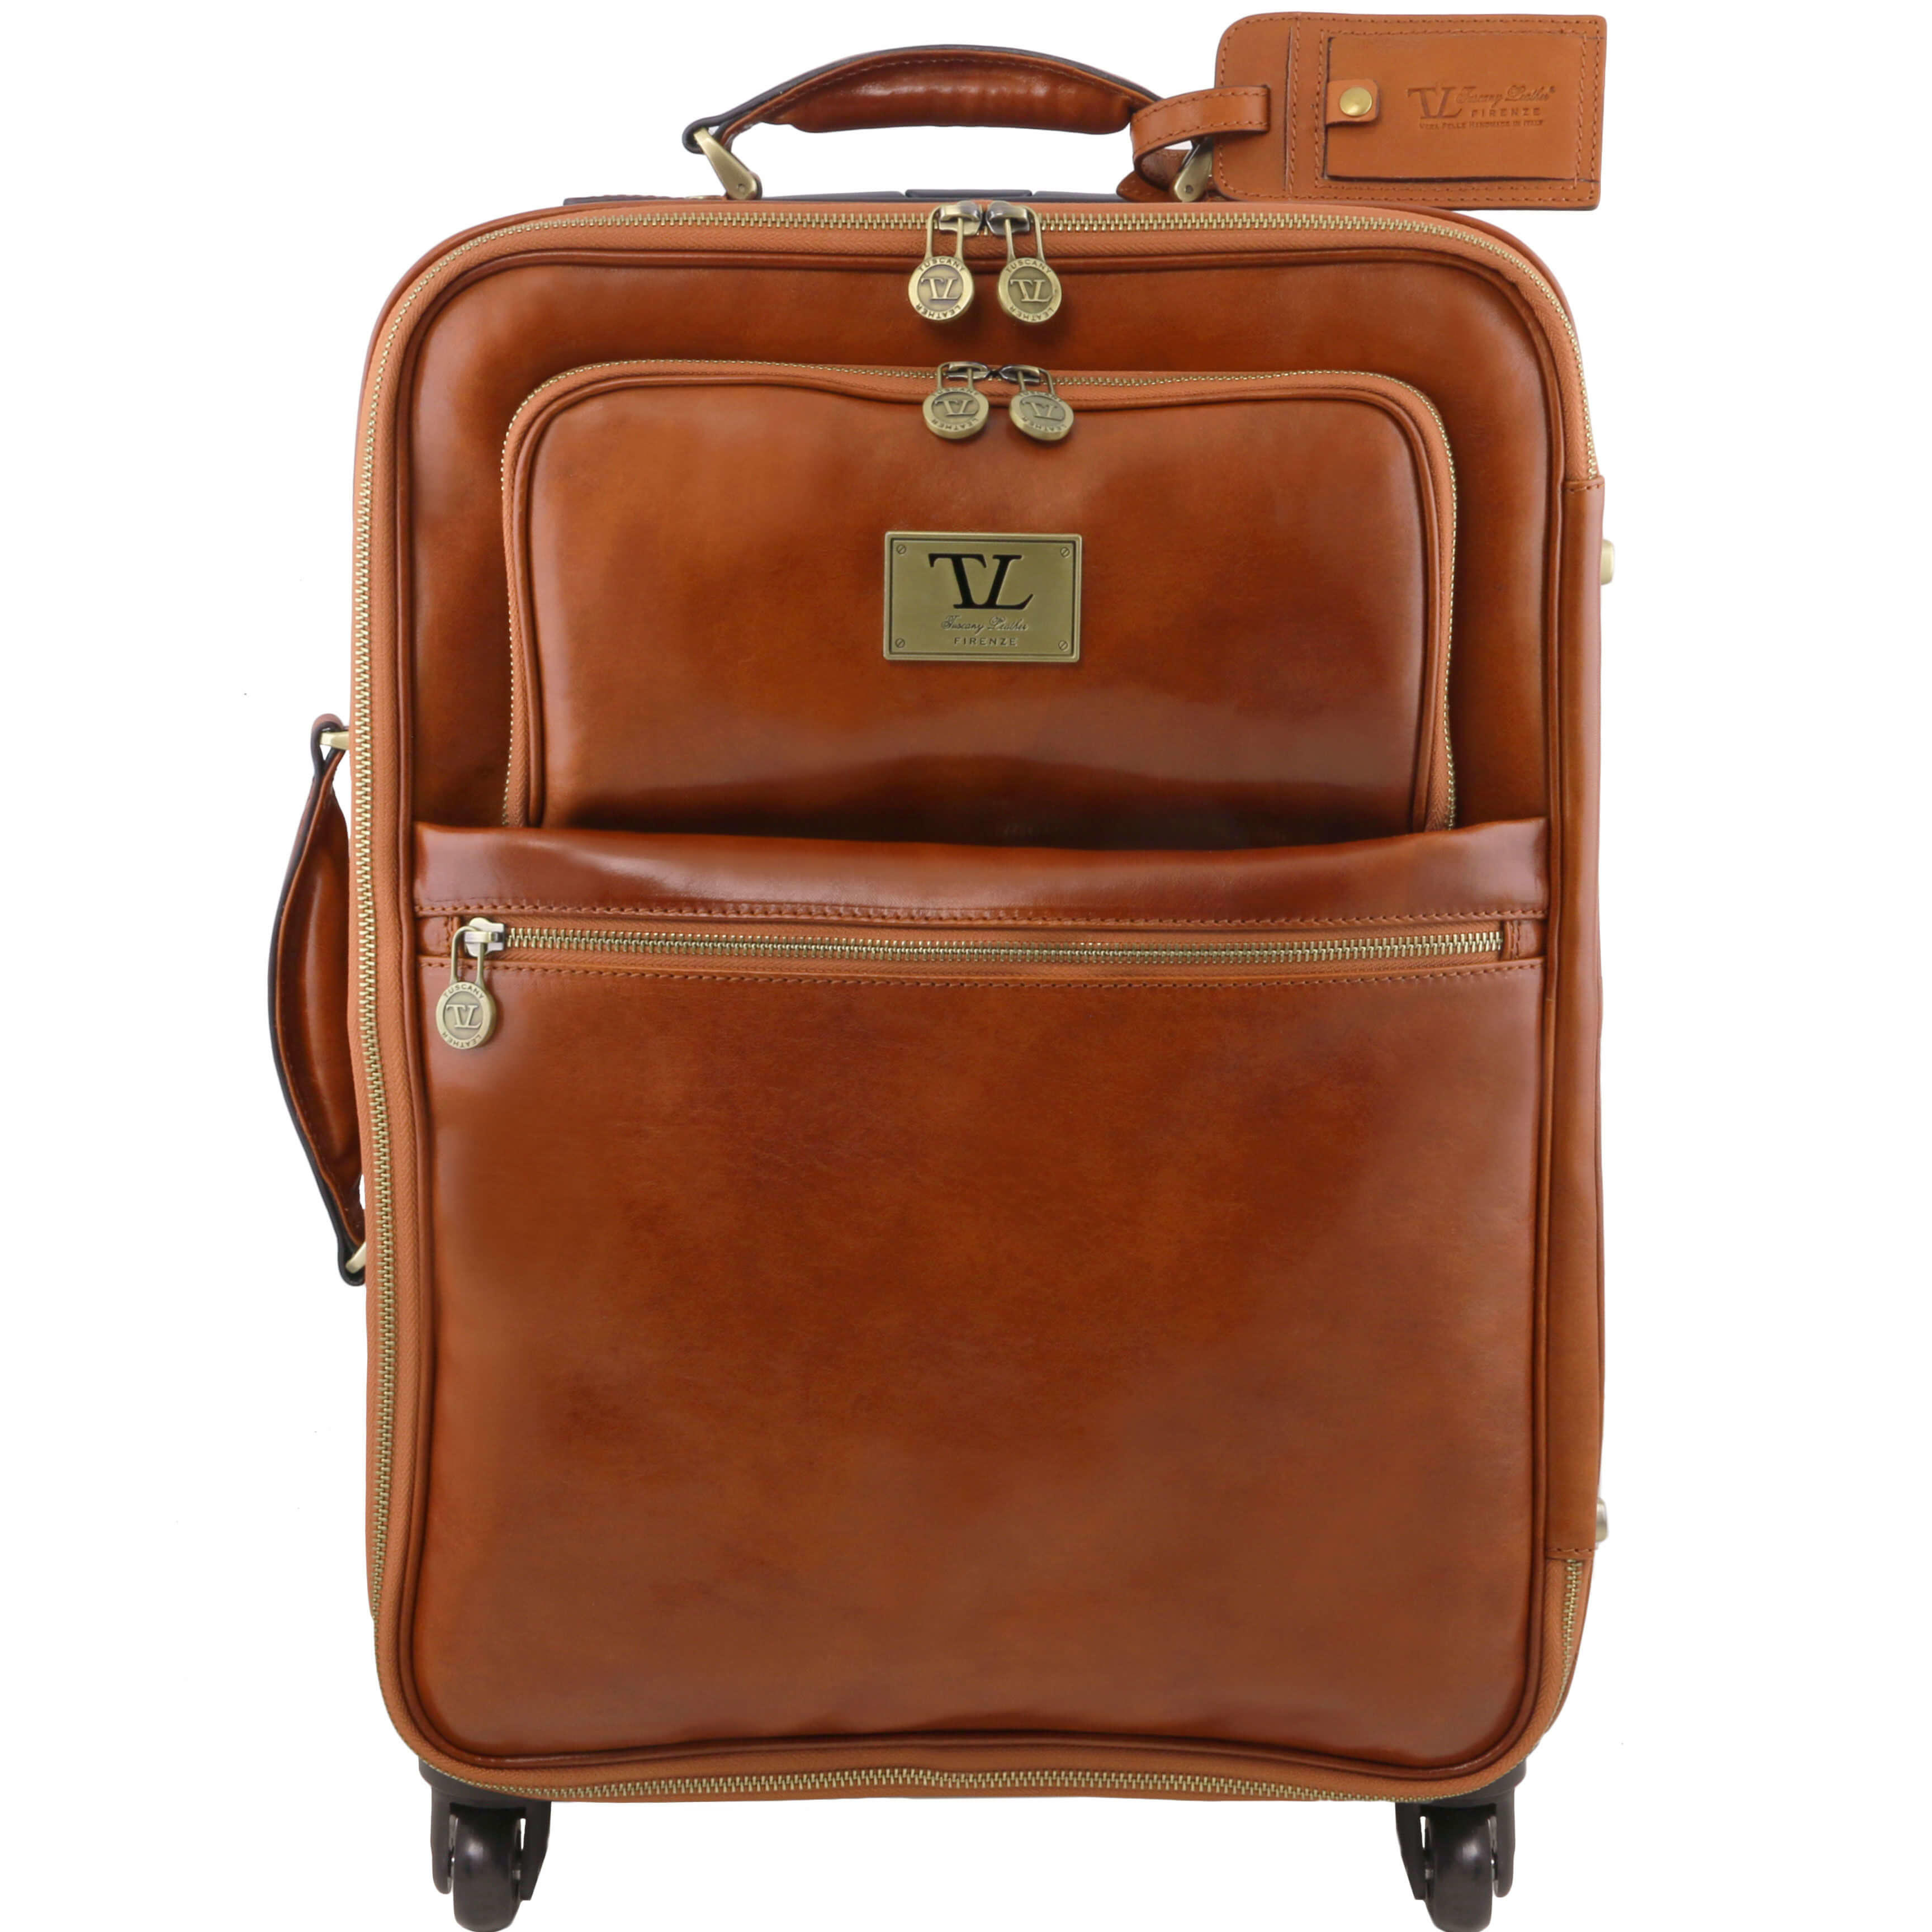 TL141390 Voyager 4 Wheeled Travel-Luggage Bag-Case in Polished Calf-Skin Leather In Honey